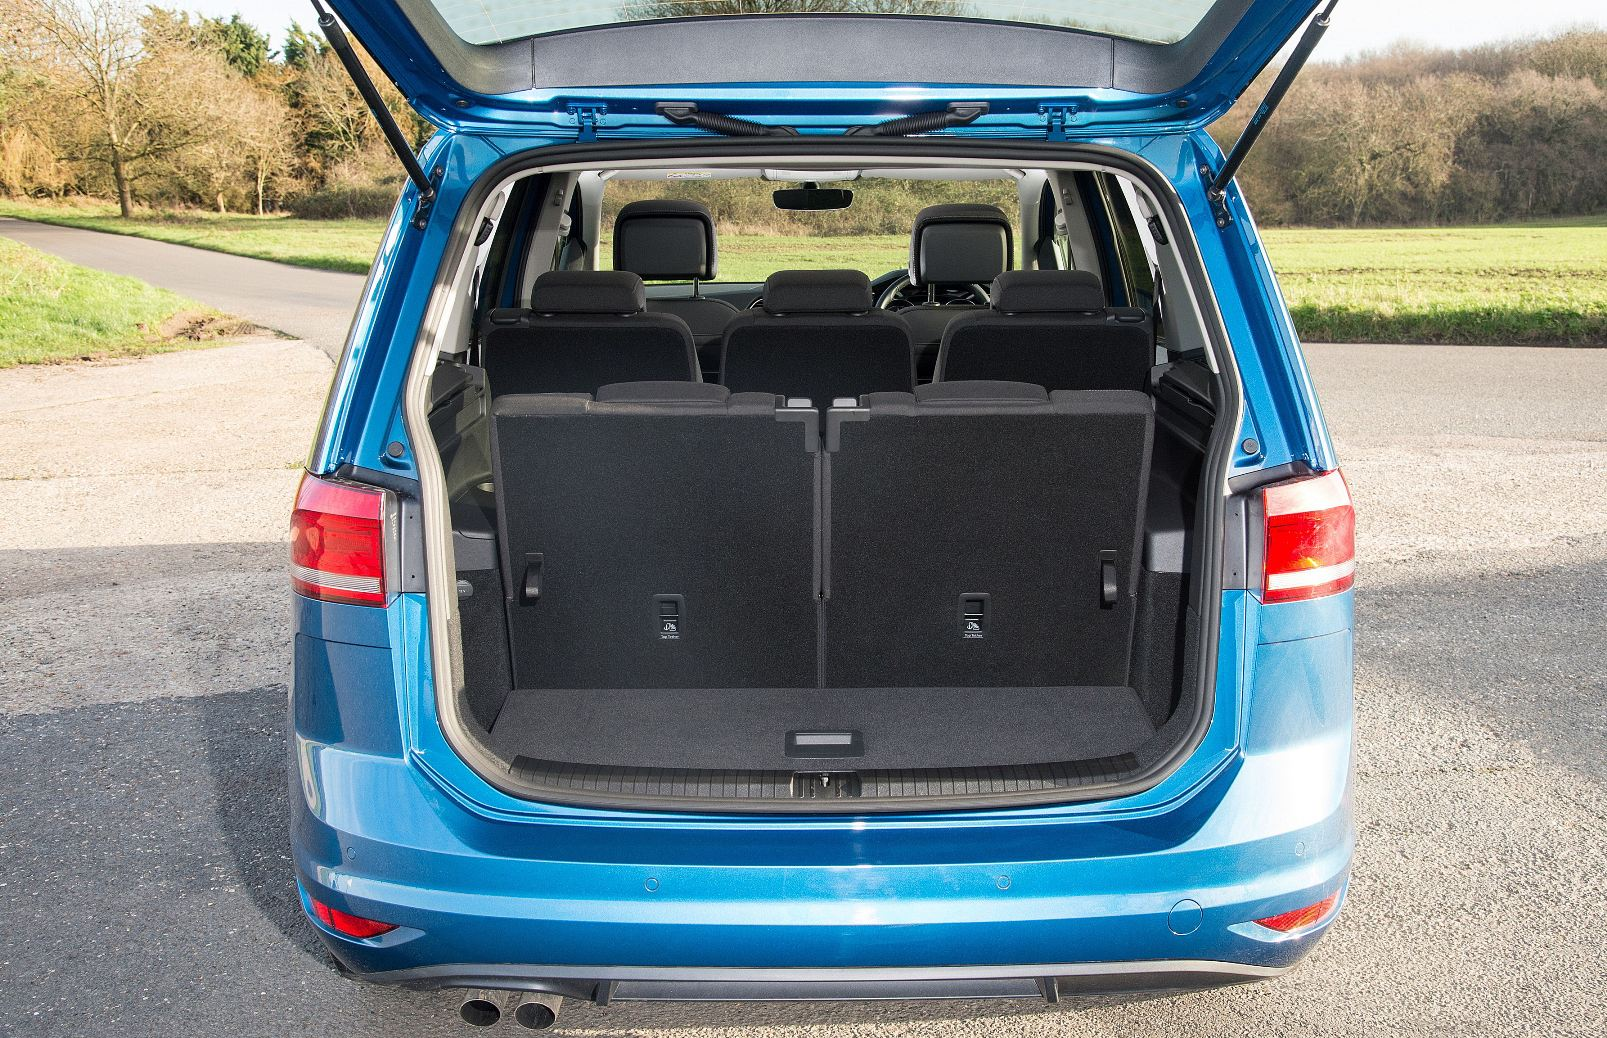 VW Touran MPV with 7 seats as standard